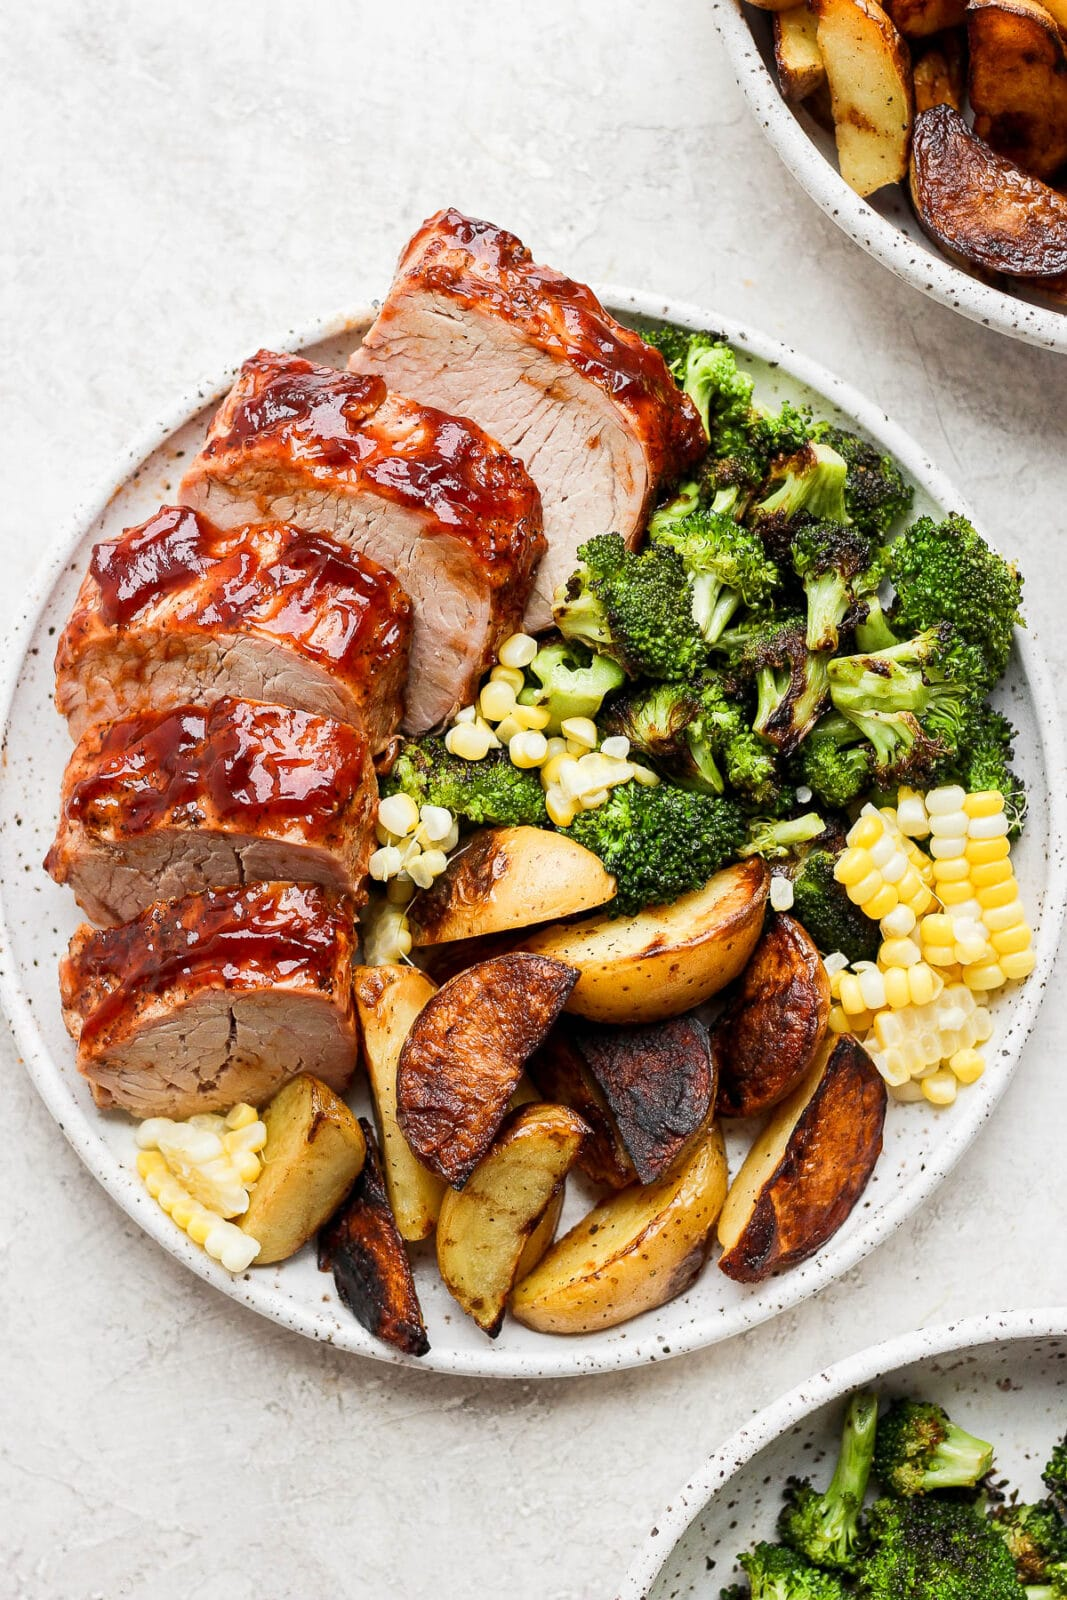 Plate of grilled pork tenderloin with grilled broccoli, corn and potato wedges.